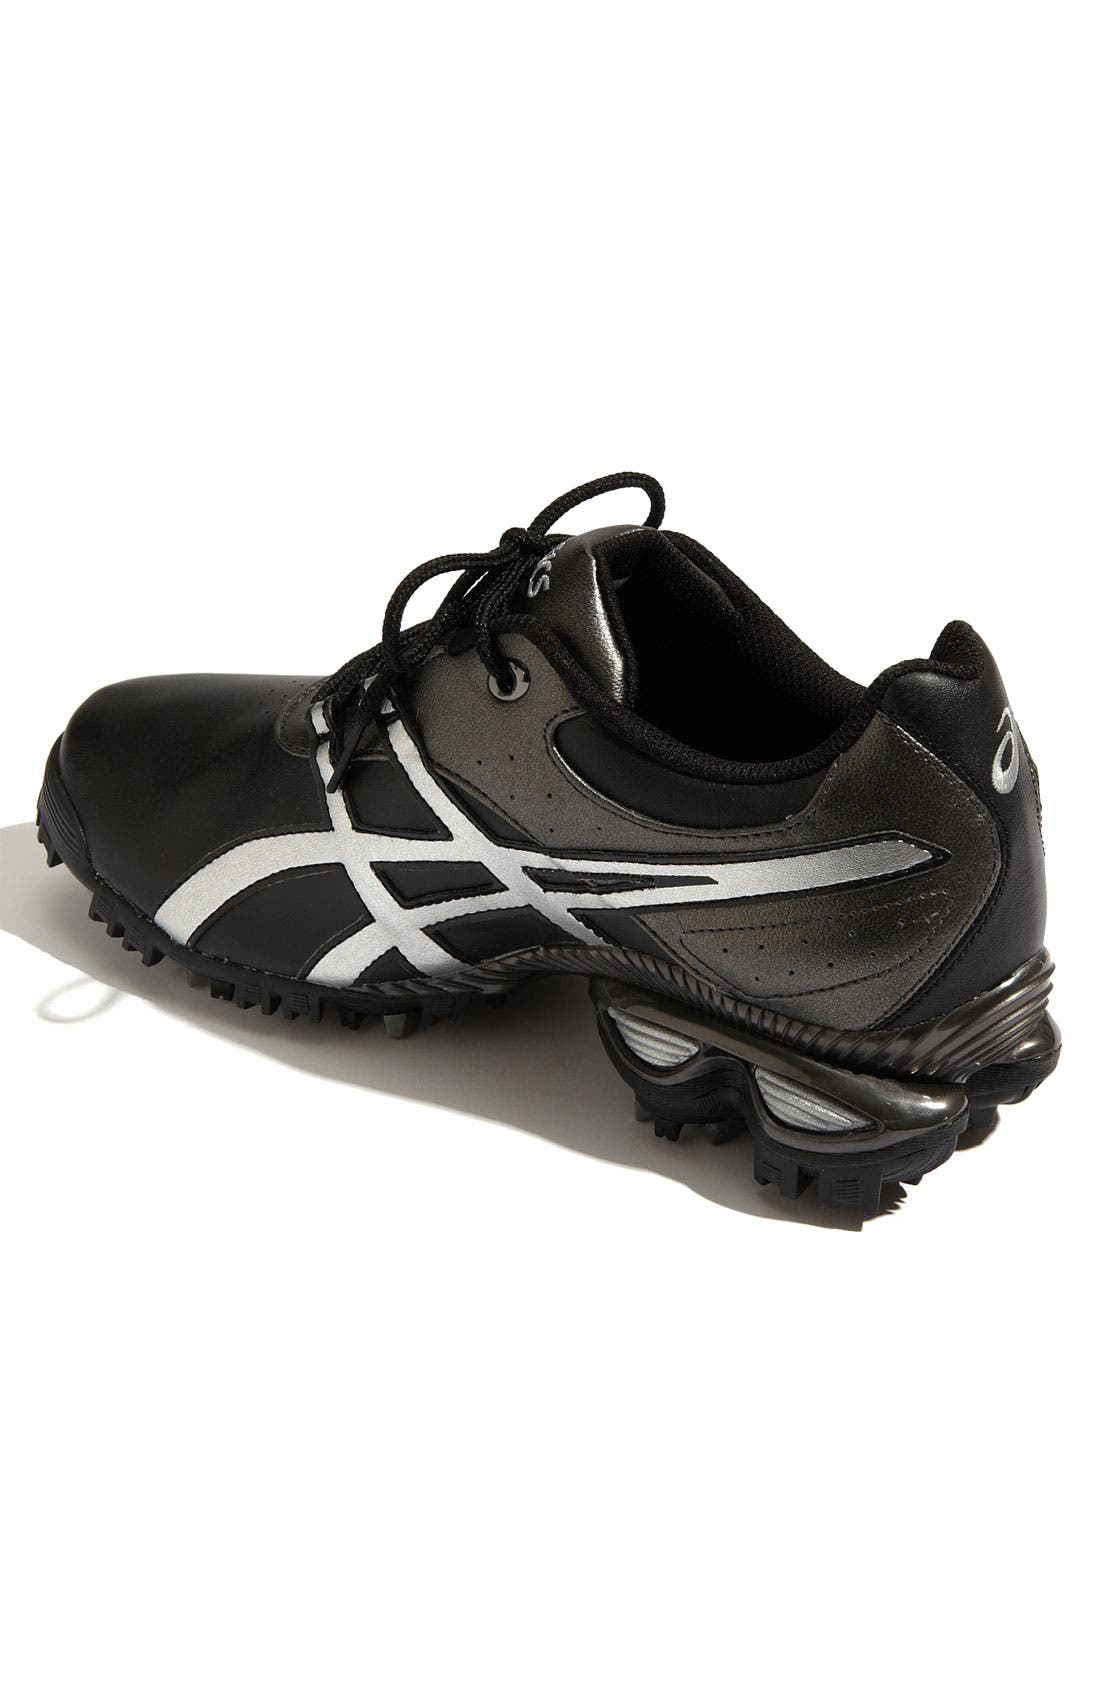 Alternate Image 2  - ASICS® 'GEL-Linksmaster™' Golf Shoe (Men)